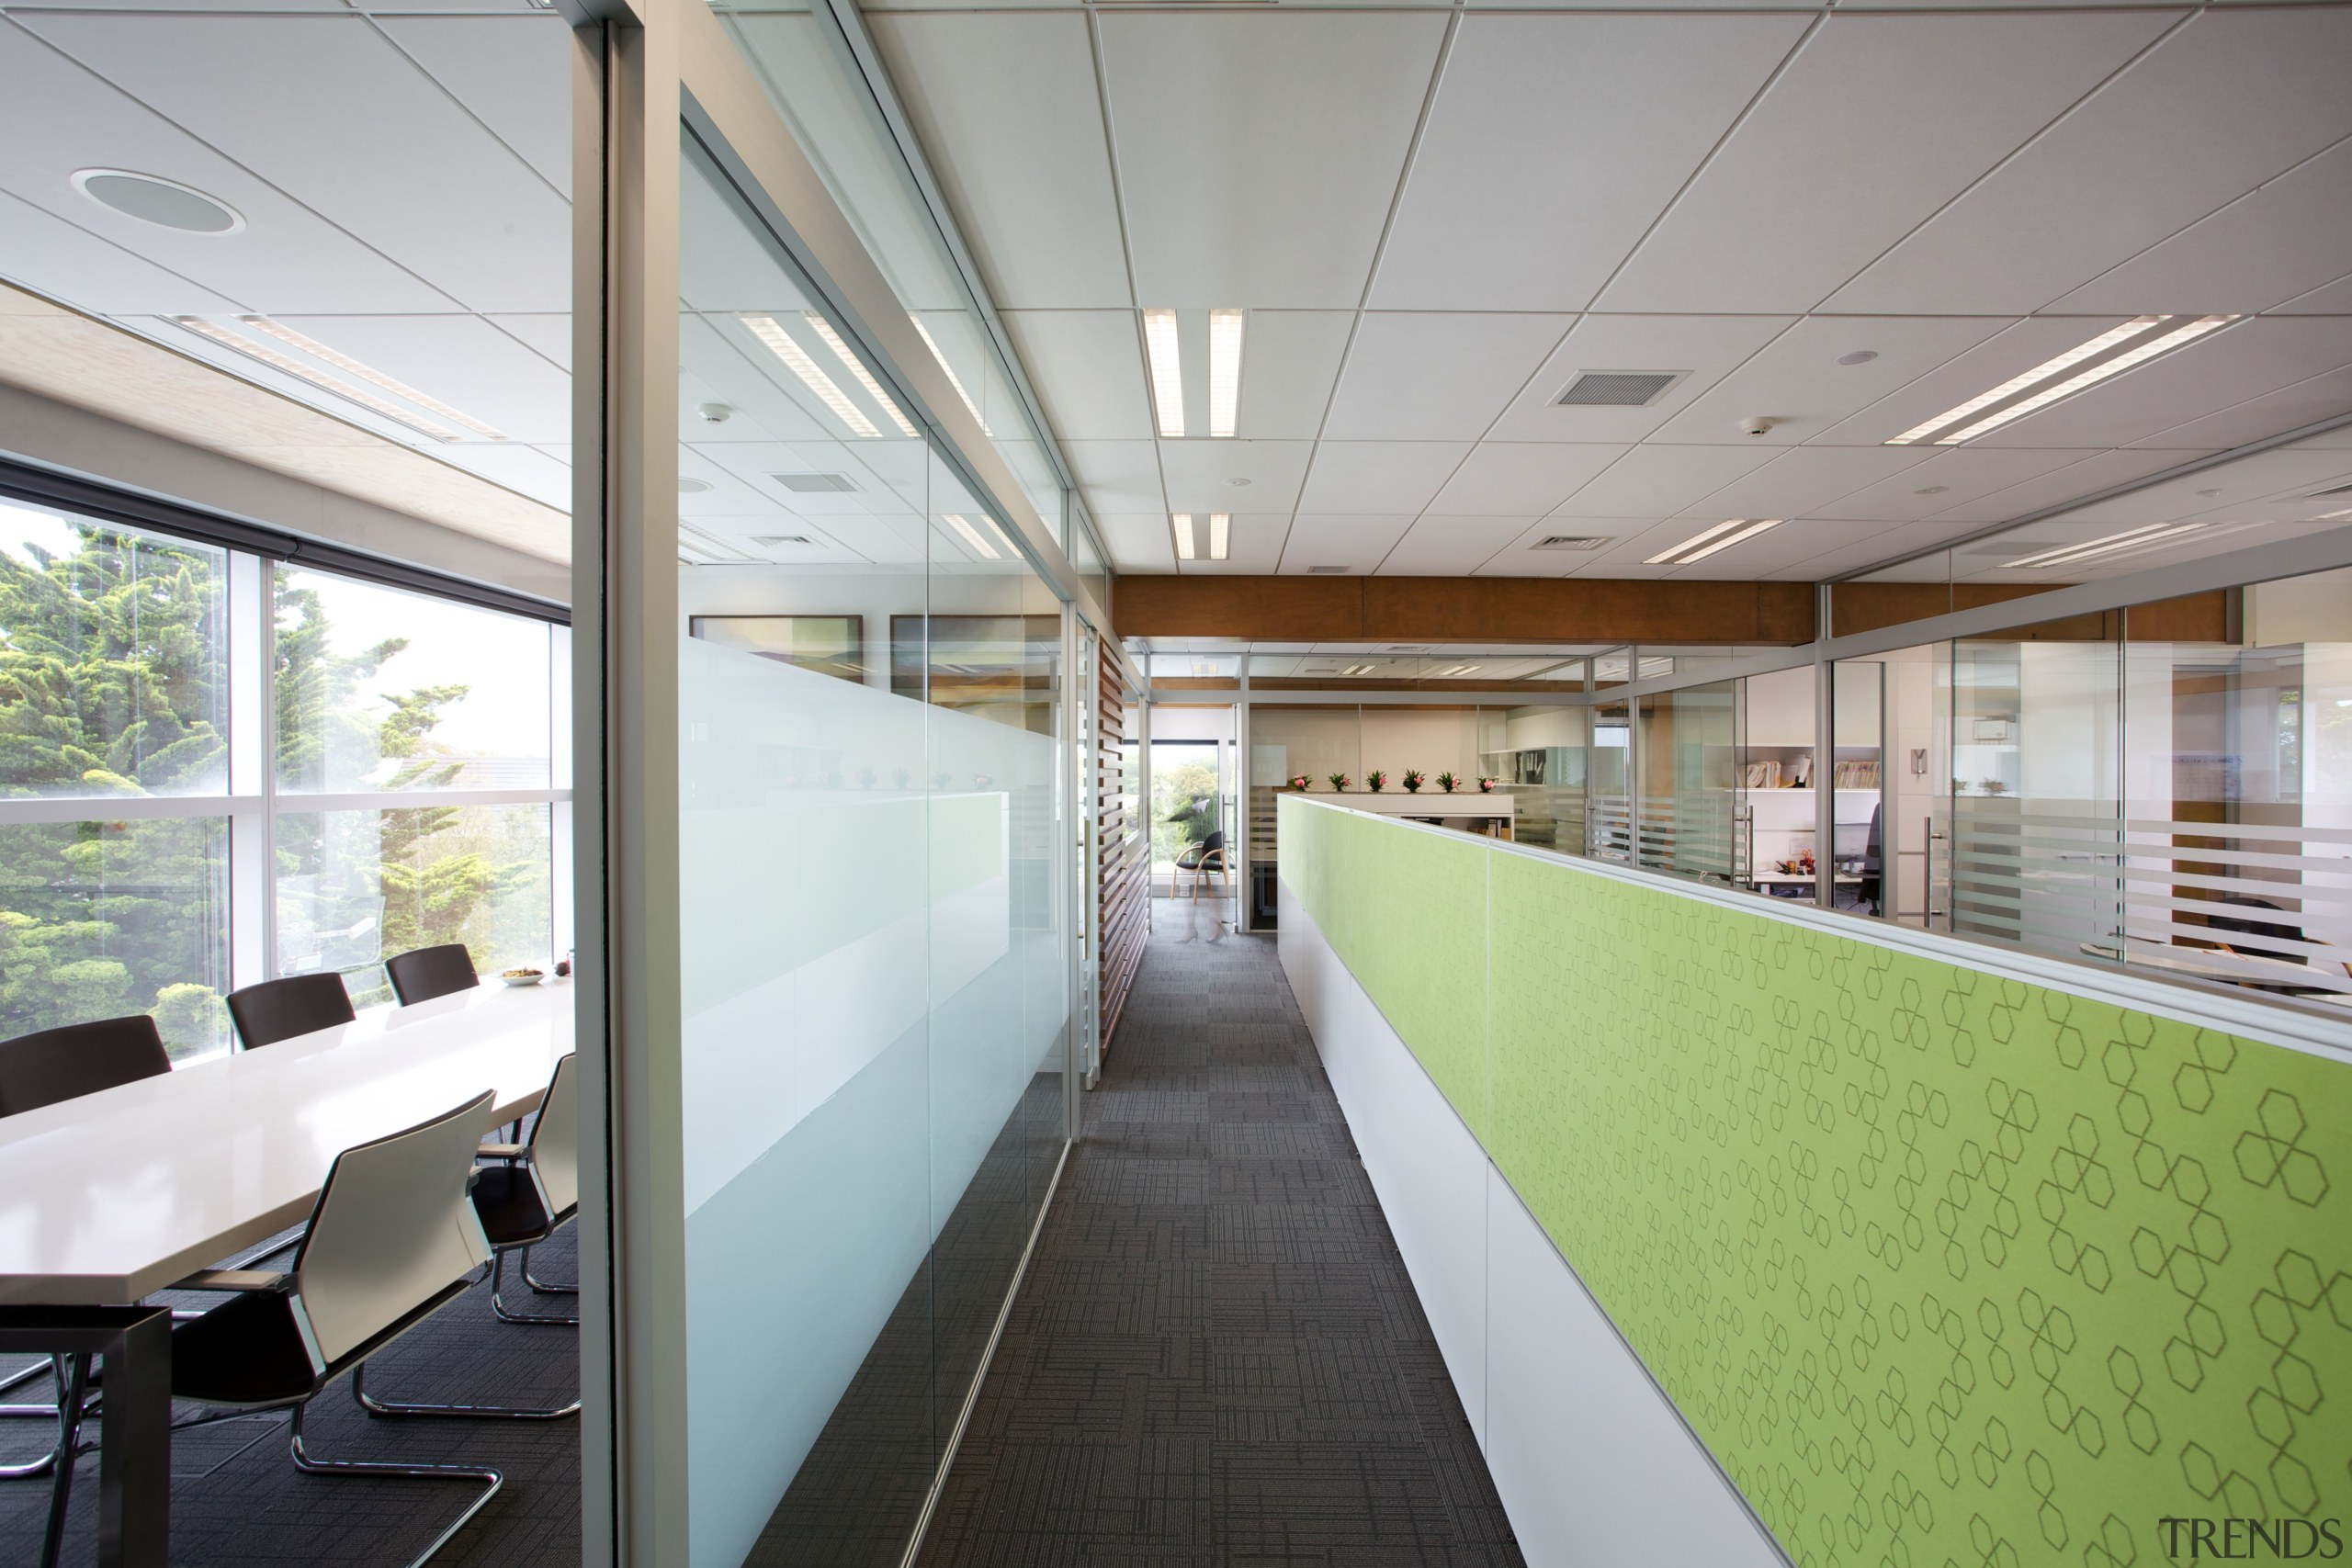 New seismic structural systems technology is transforming the architecture, ceiling, daylighting, interior design, office, gray